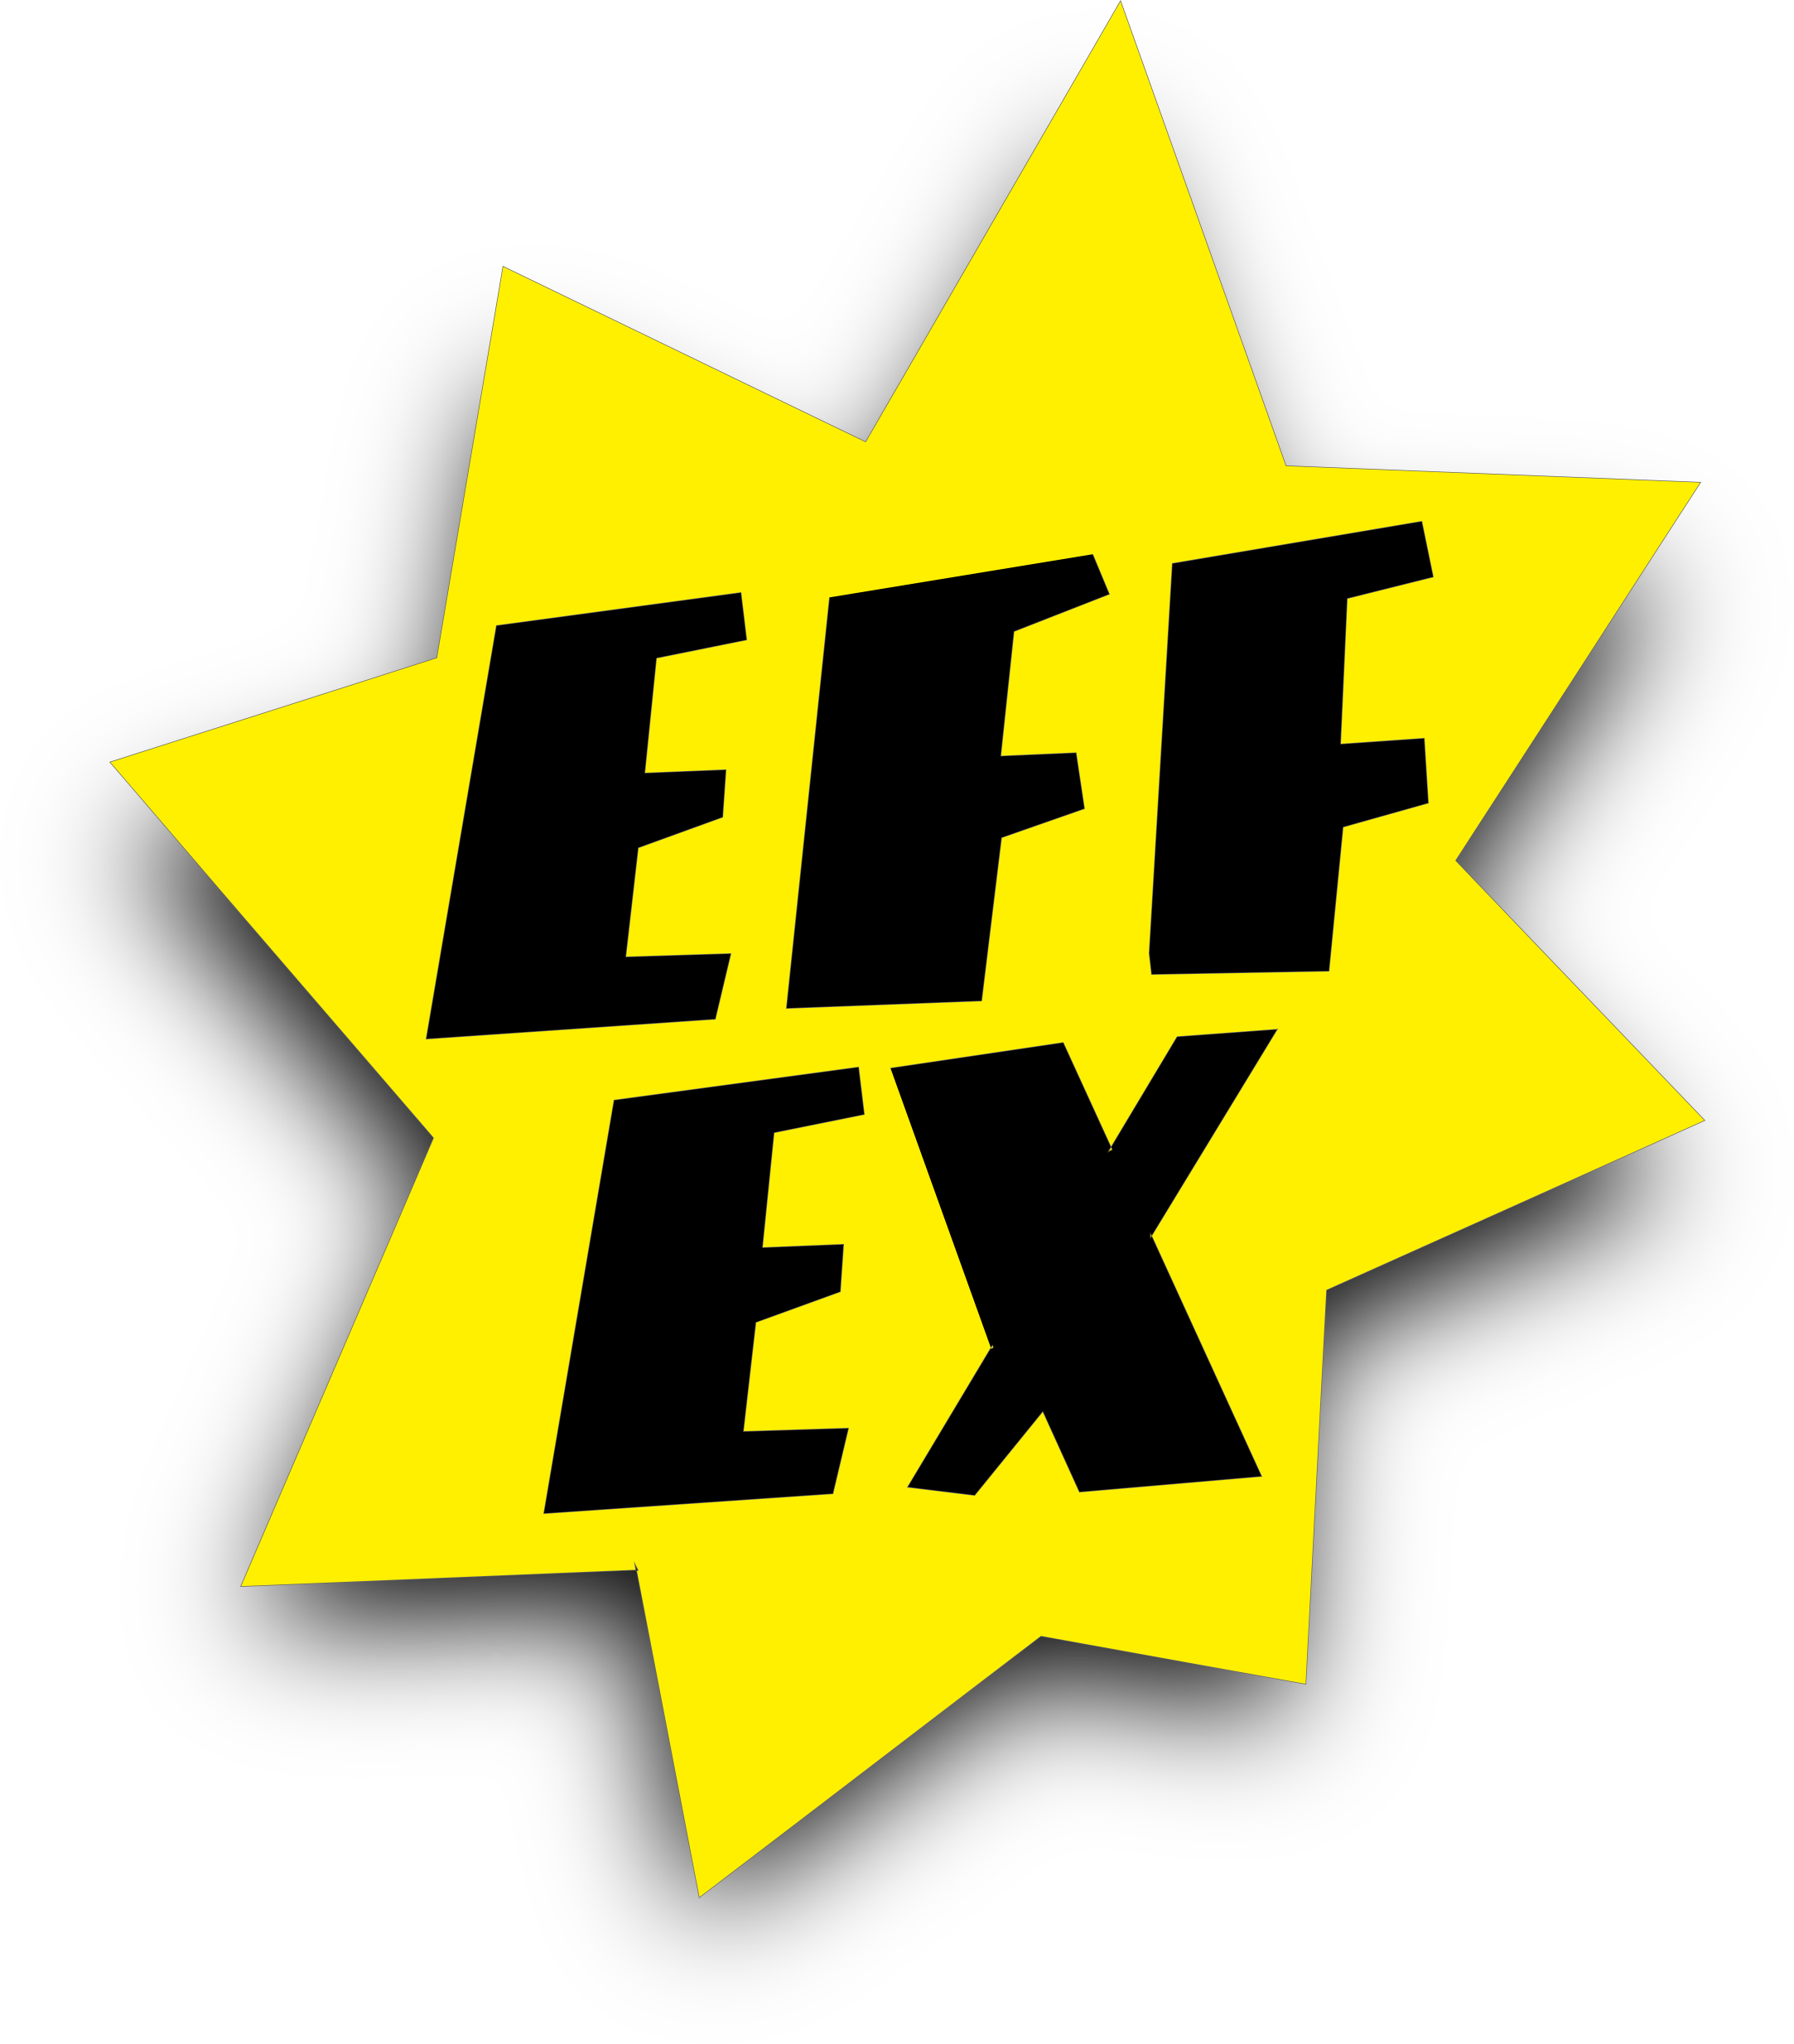 Effluence Express logo